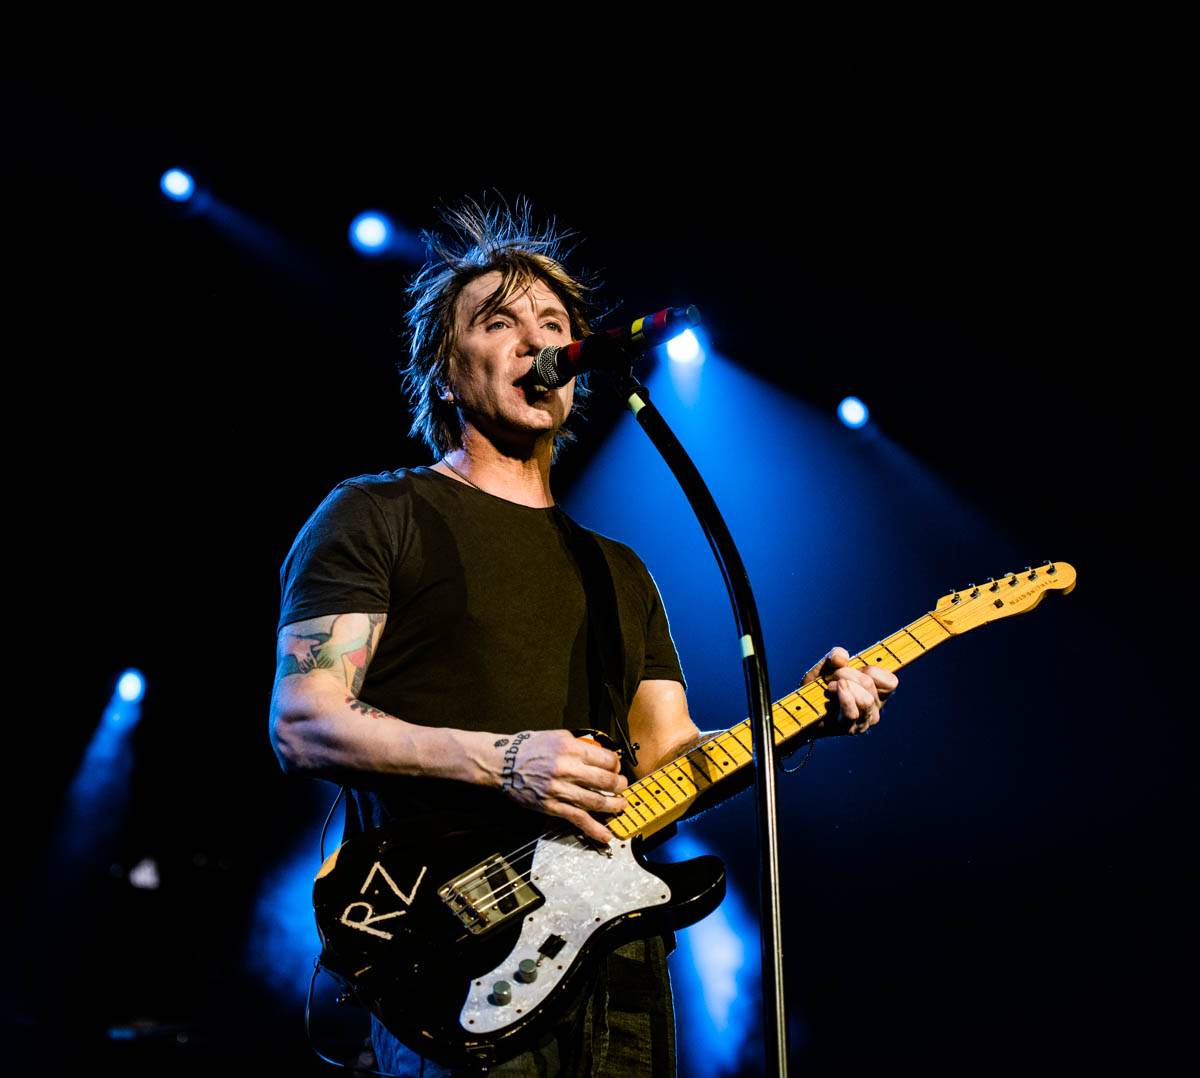 Goo Goo Dolls rock Ruoff Music Center in Noblesville, IN. | 07/21/19 | Photos by: ©Pix Meyers 2019